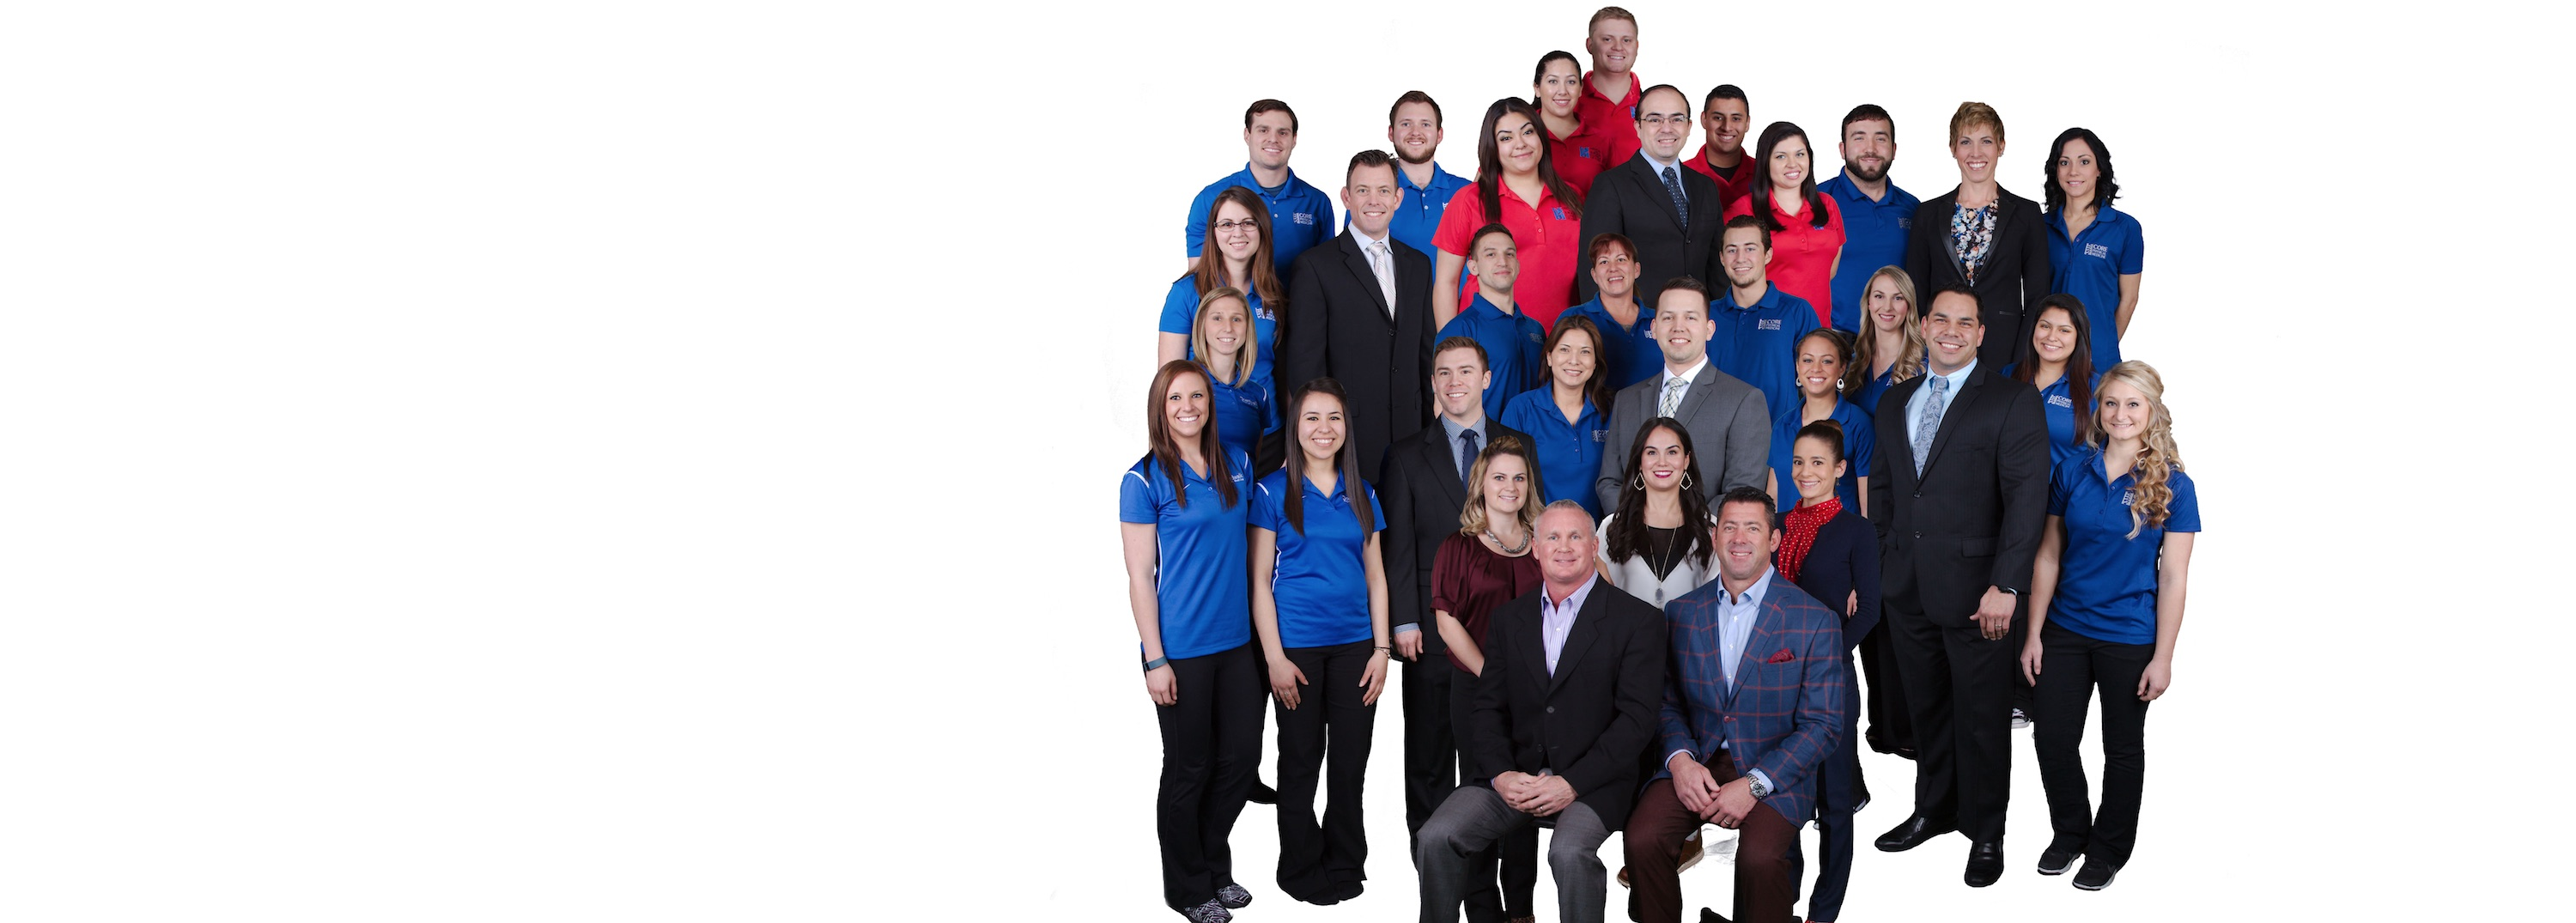 Chiropractors and Physical Therapists